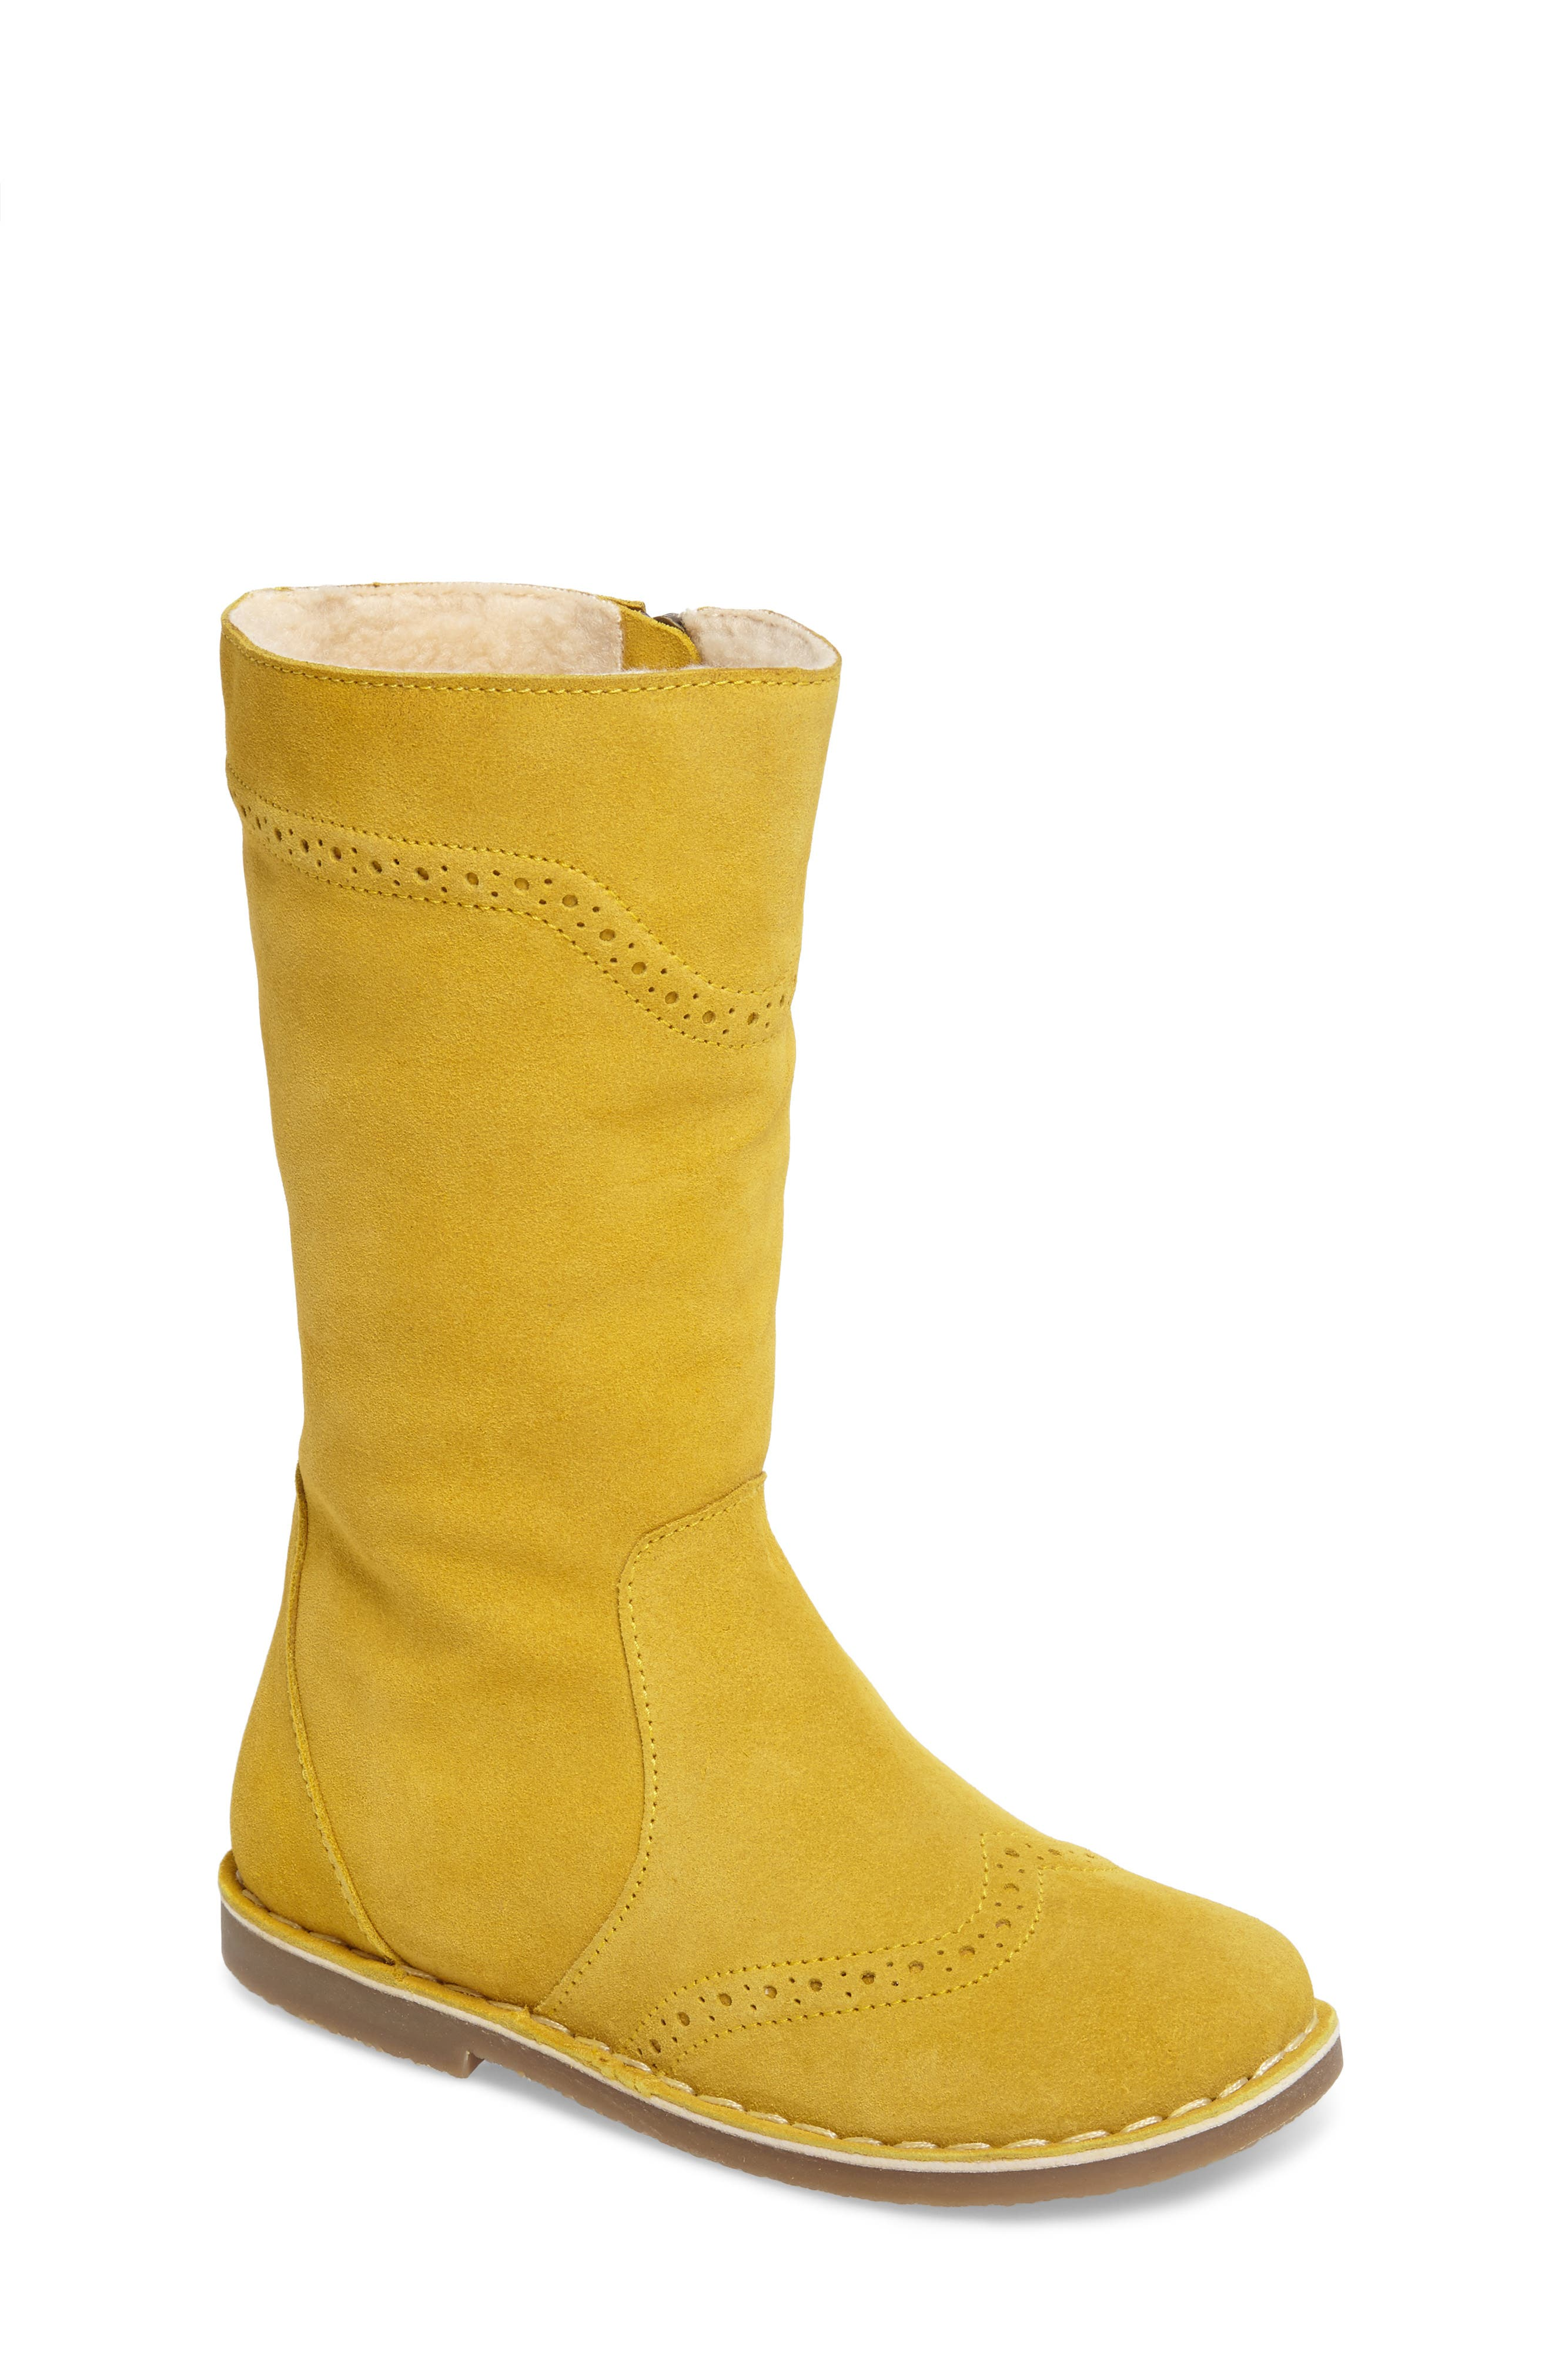 Alternate Image 1 Selected - Mini Boden Tall Leather Boot (Toddler, Little Kid & Big Kid)